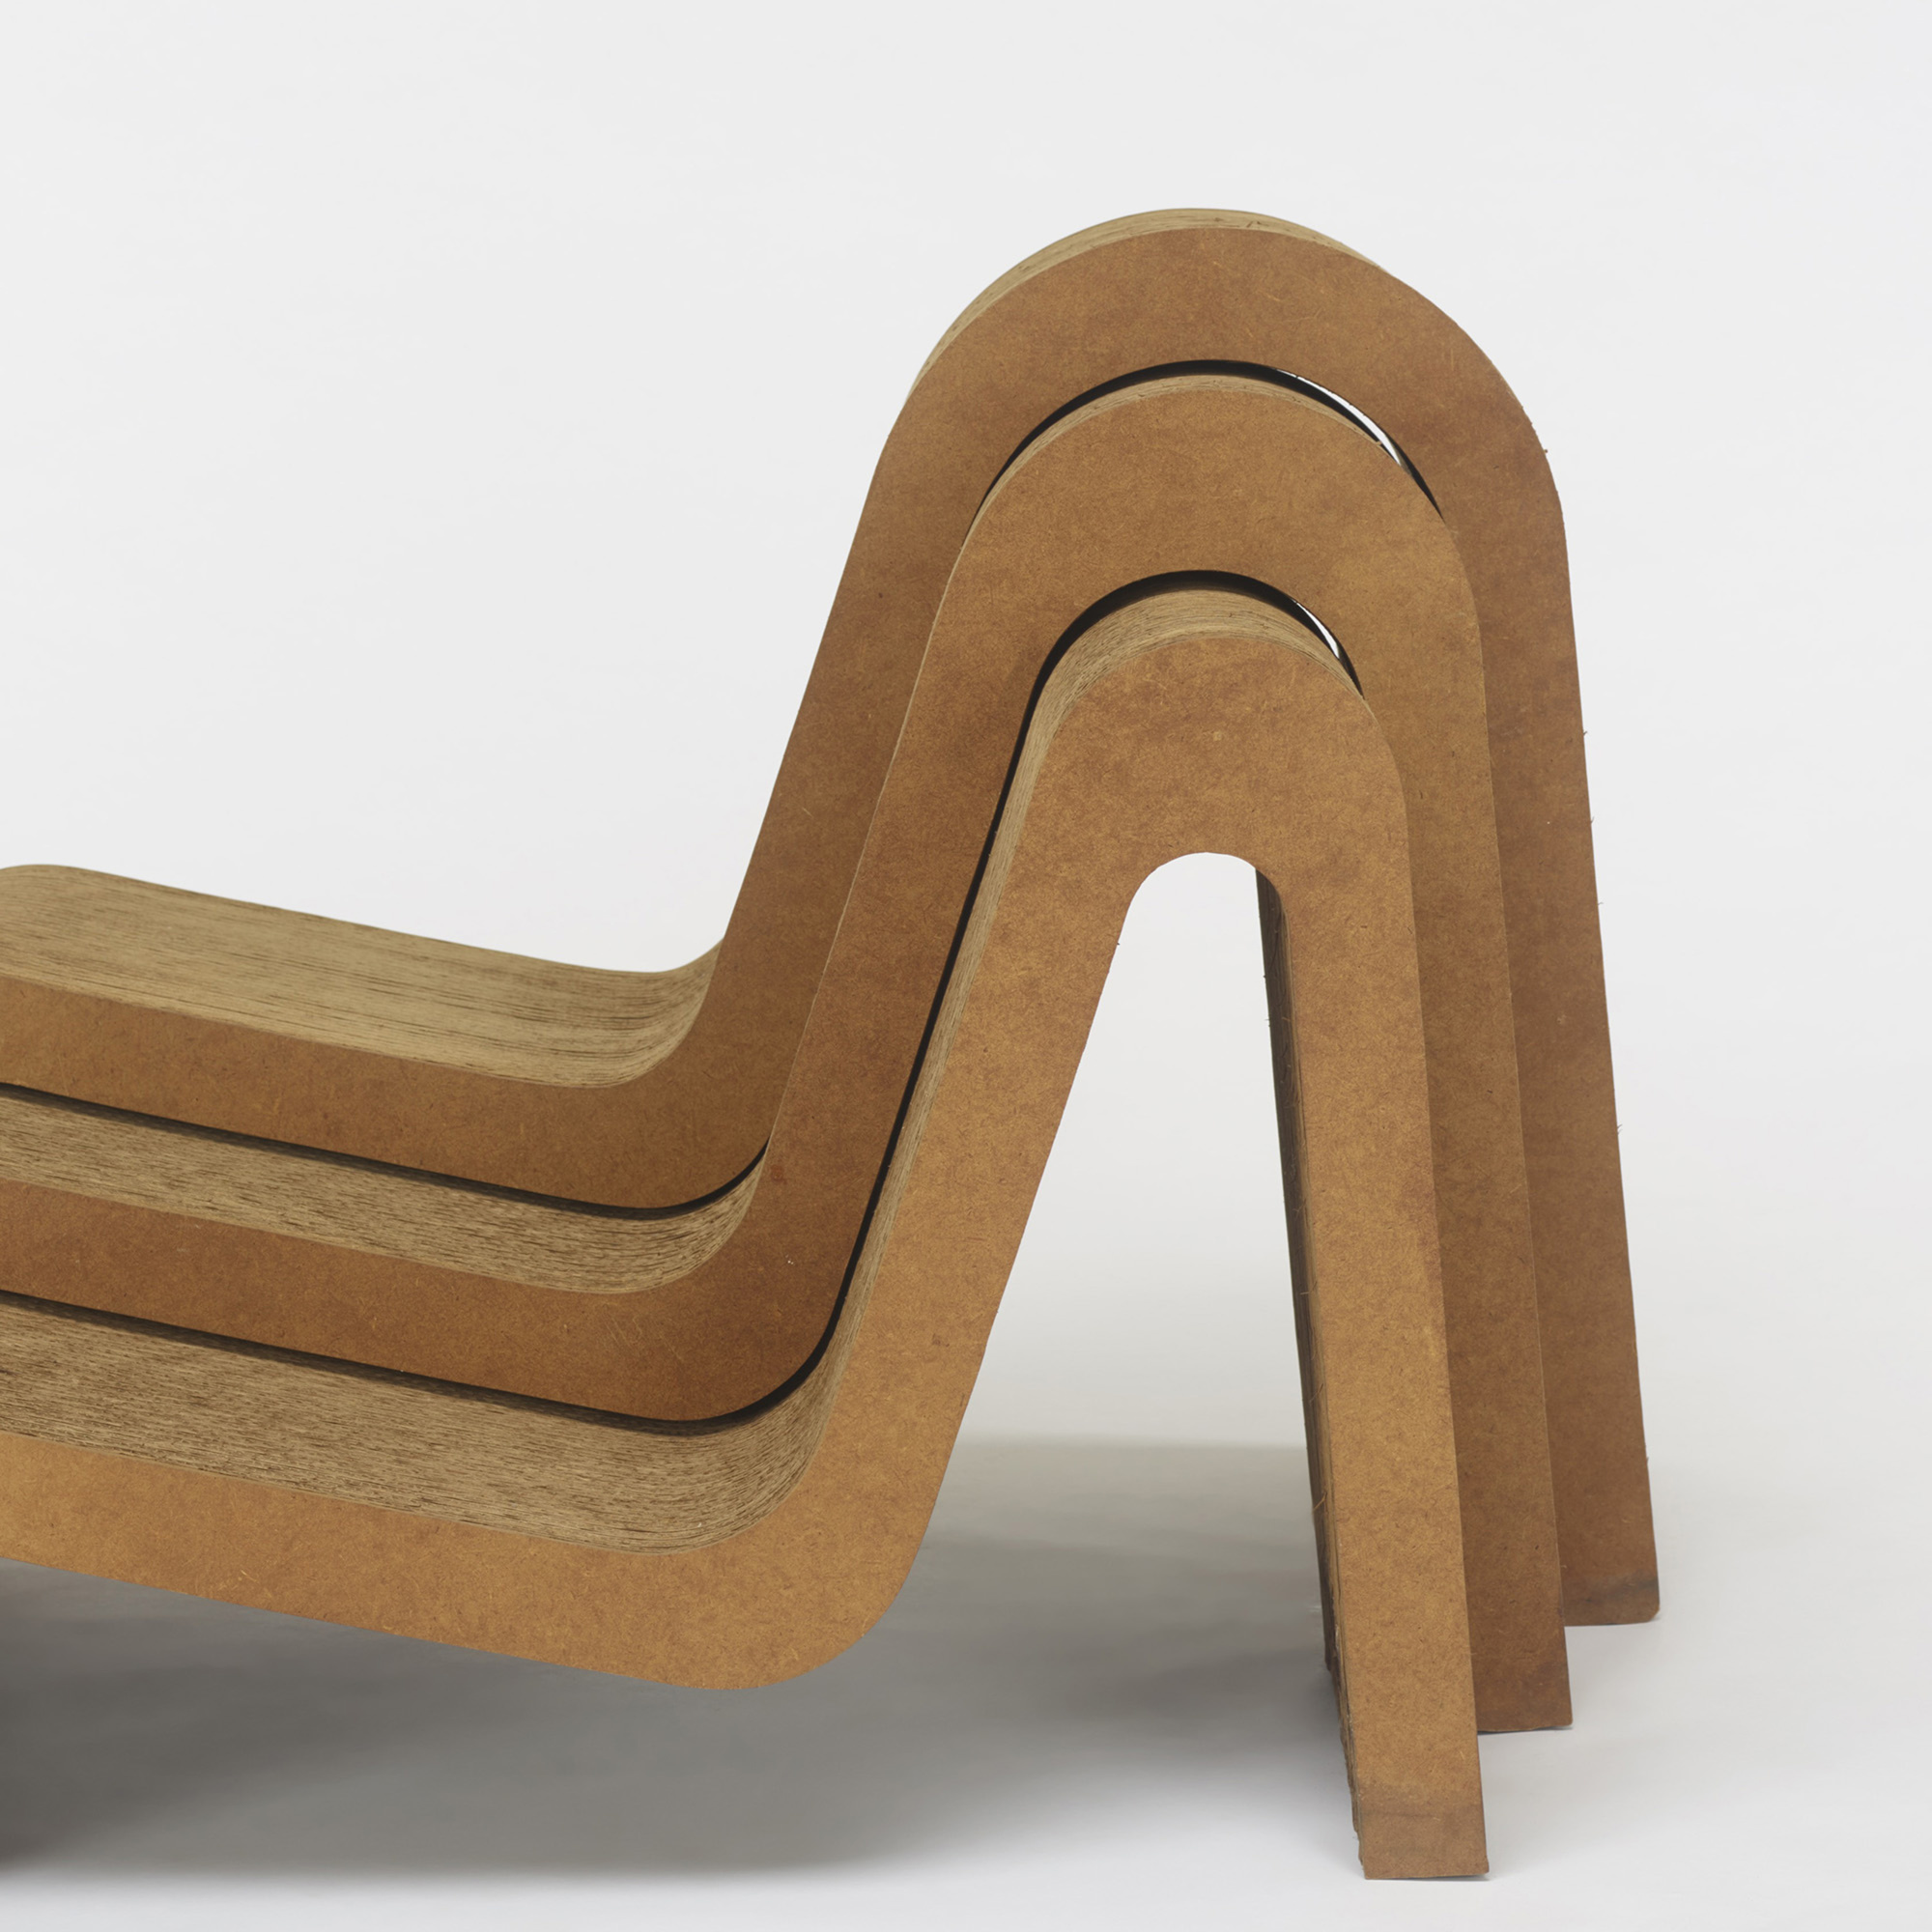 ... 281: Frank Gehry / Nesting Chairs, Set Of Three (2 Of 3)